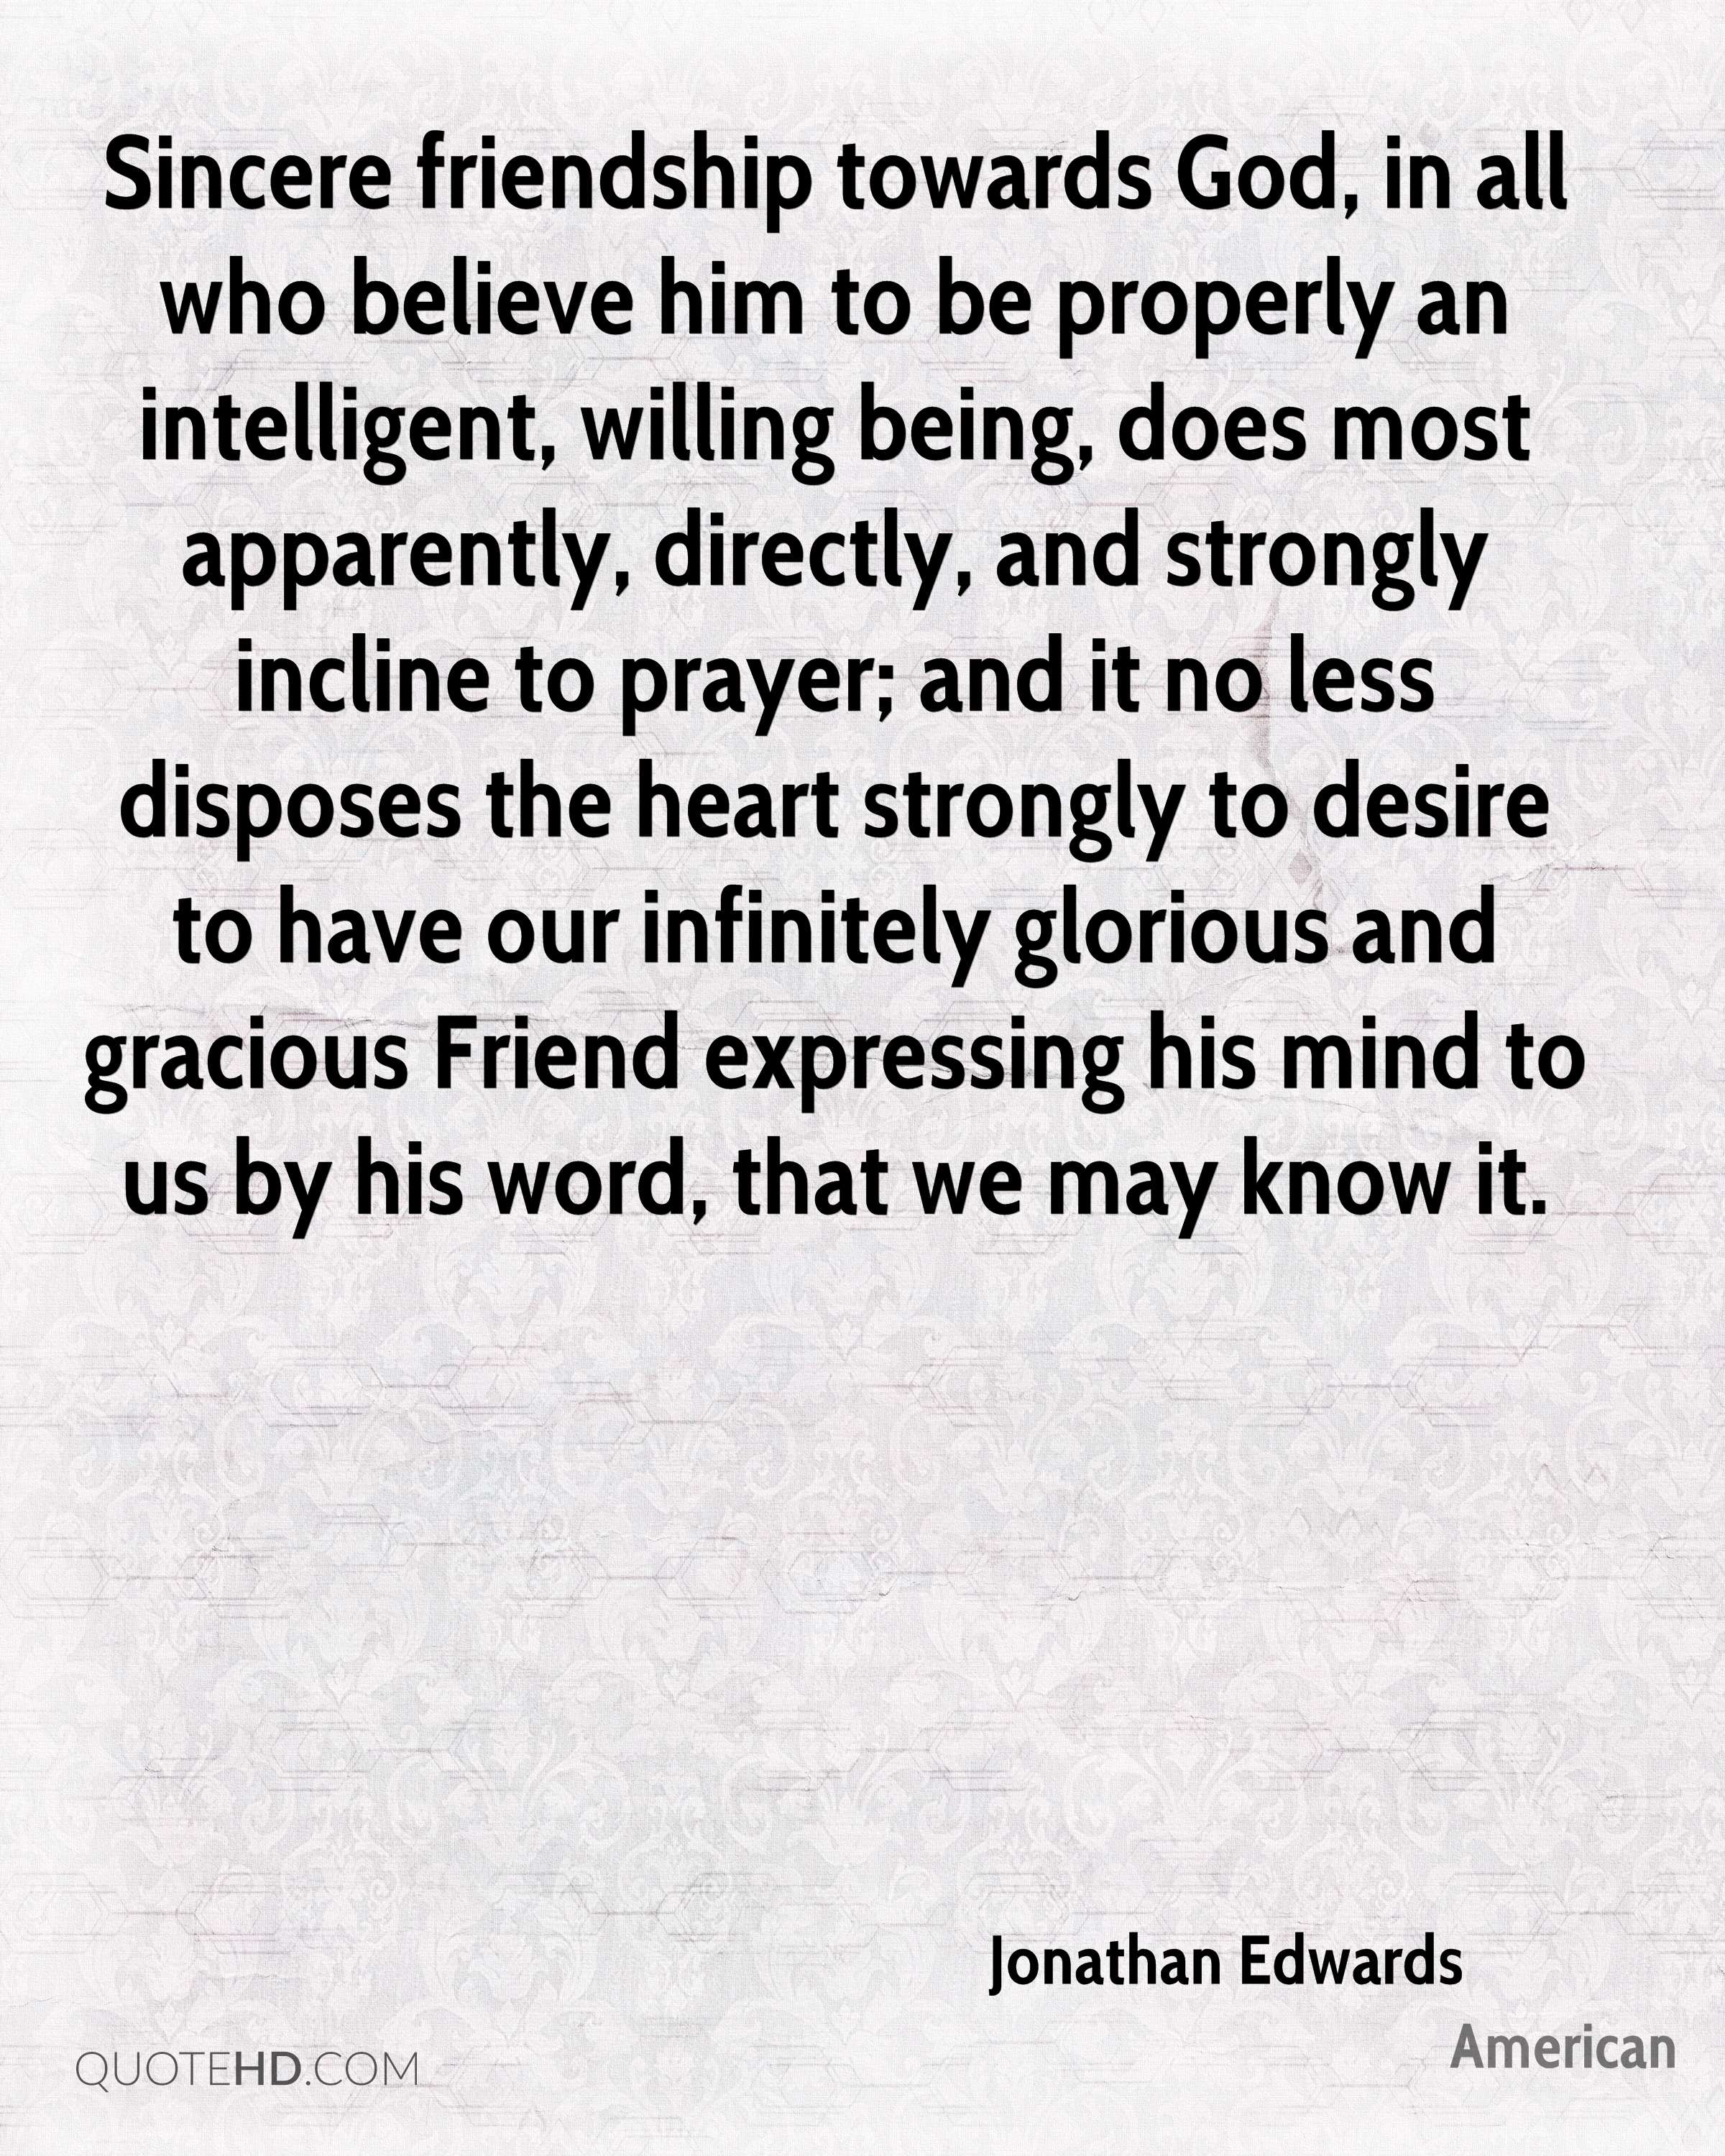 Jonathan Edwards Friendship Quotes Quotehd